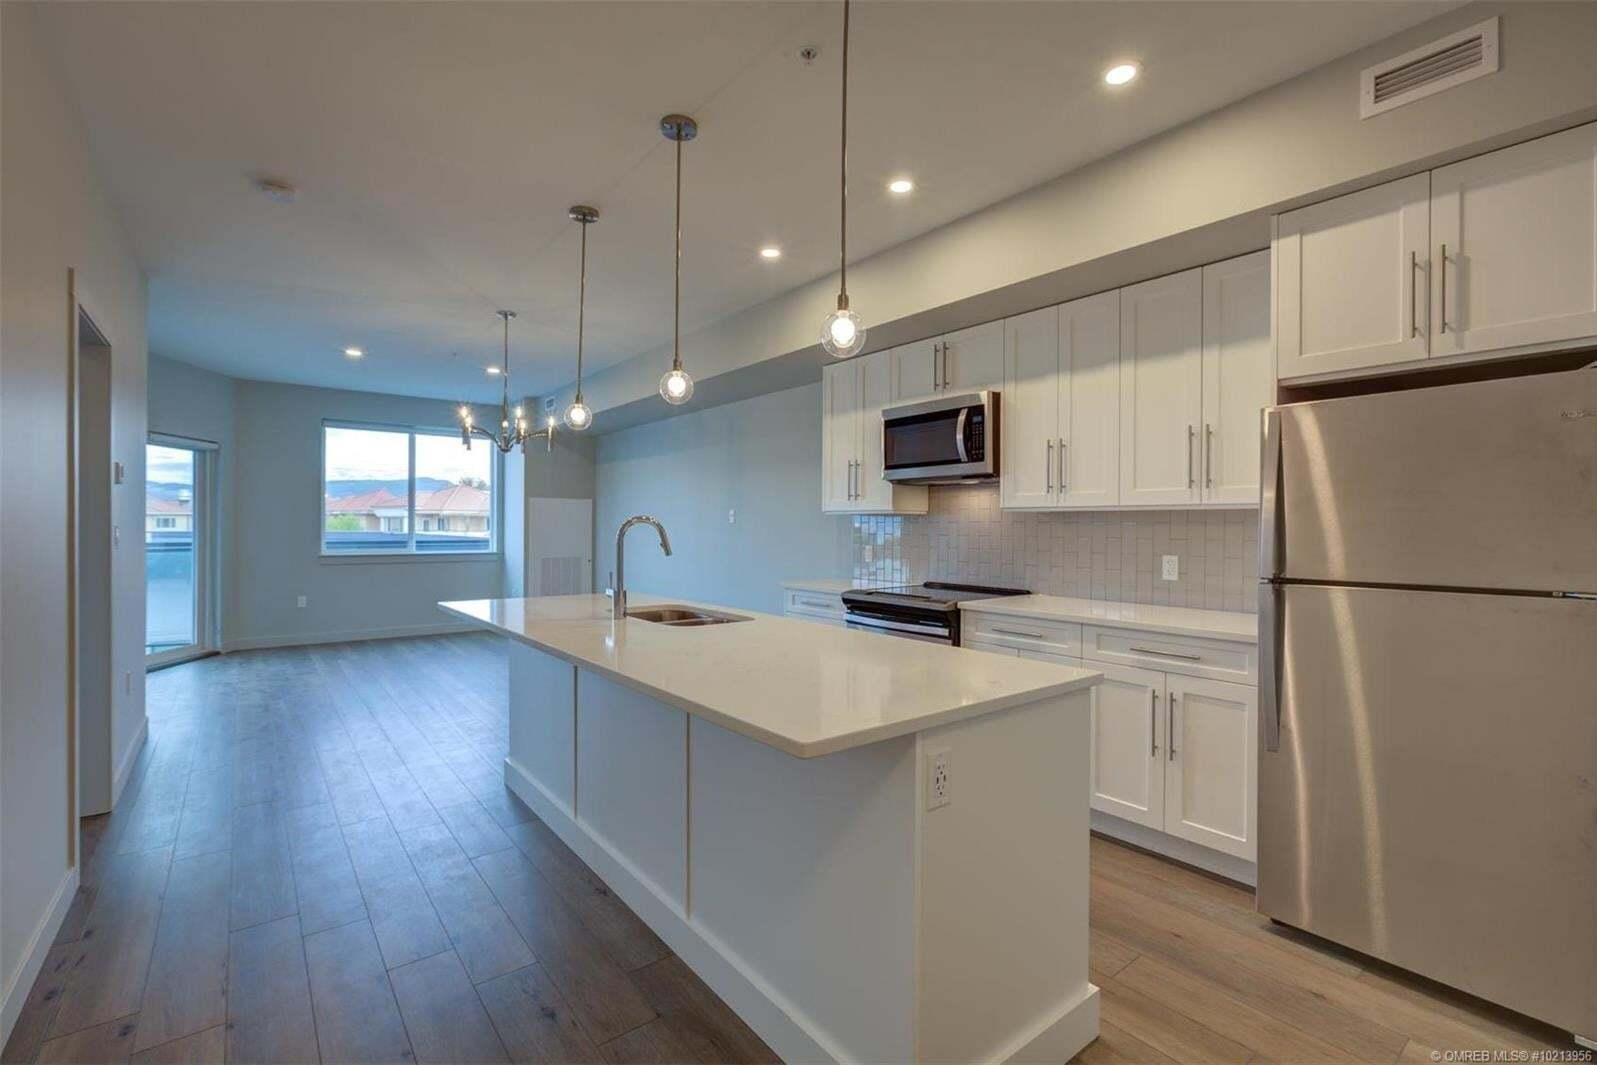 Condo for sale at 3630 Mission Springs Dr Unit 405 Kelowna British Columbia - MLS: 10213956